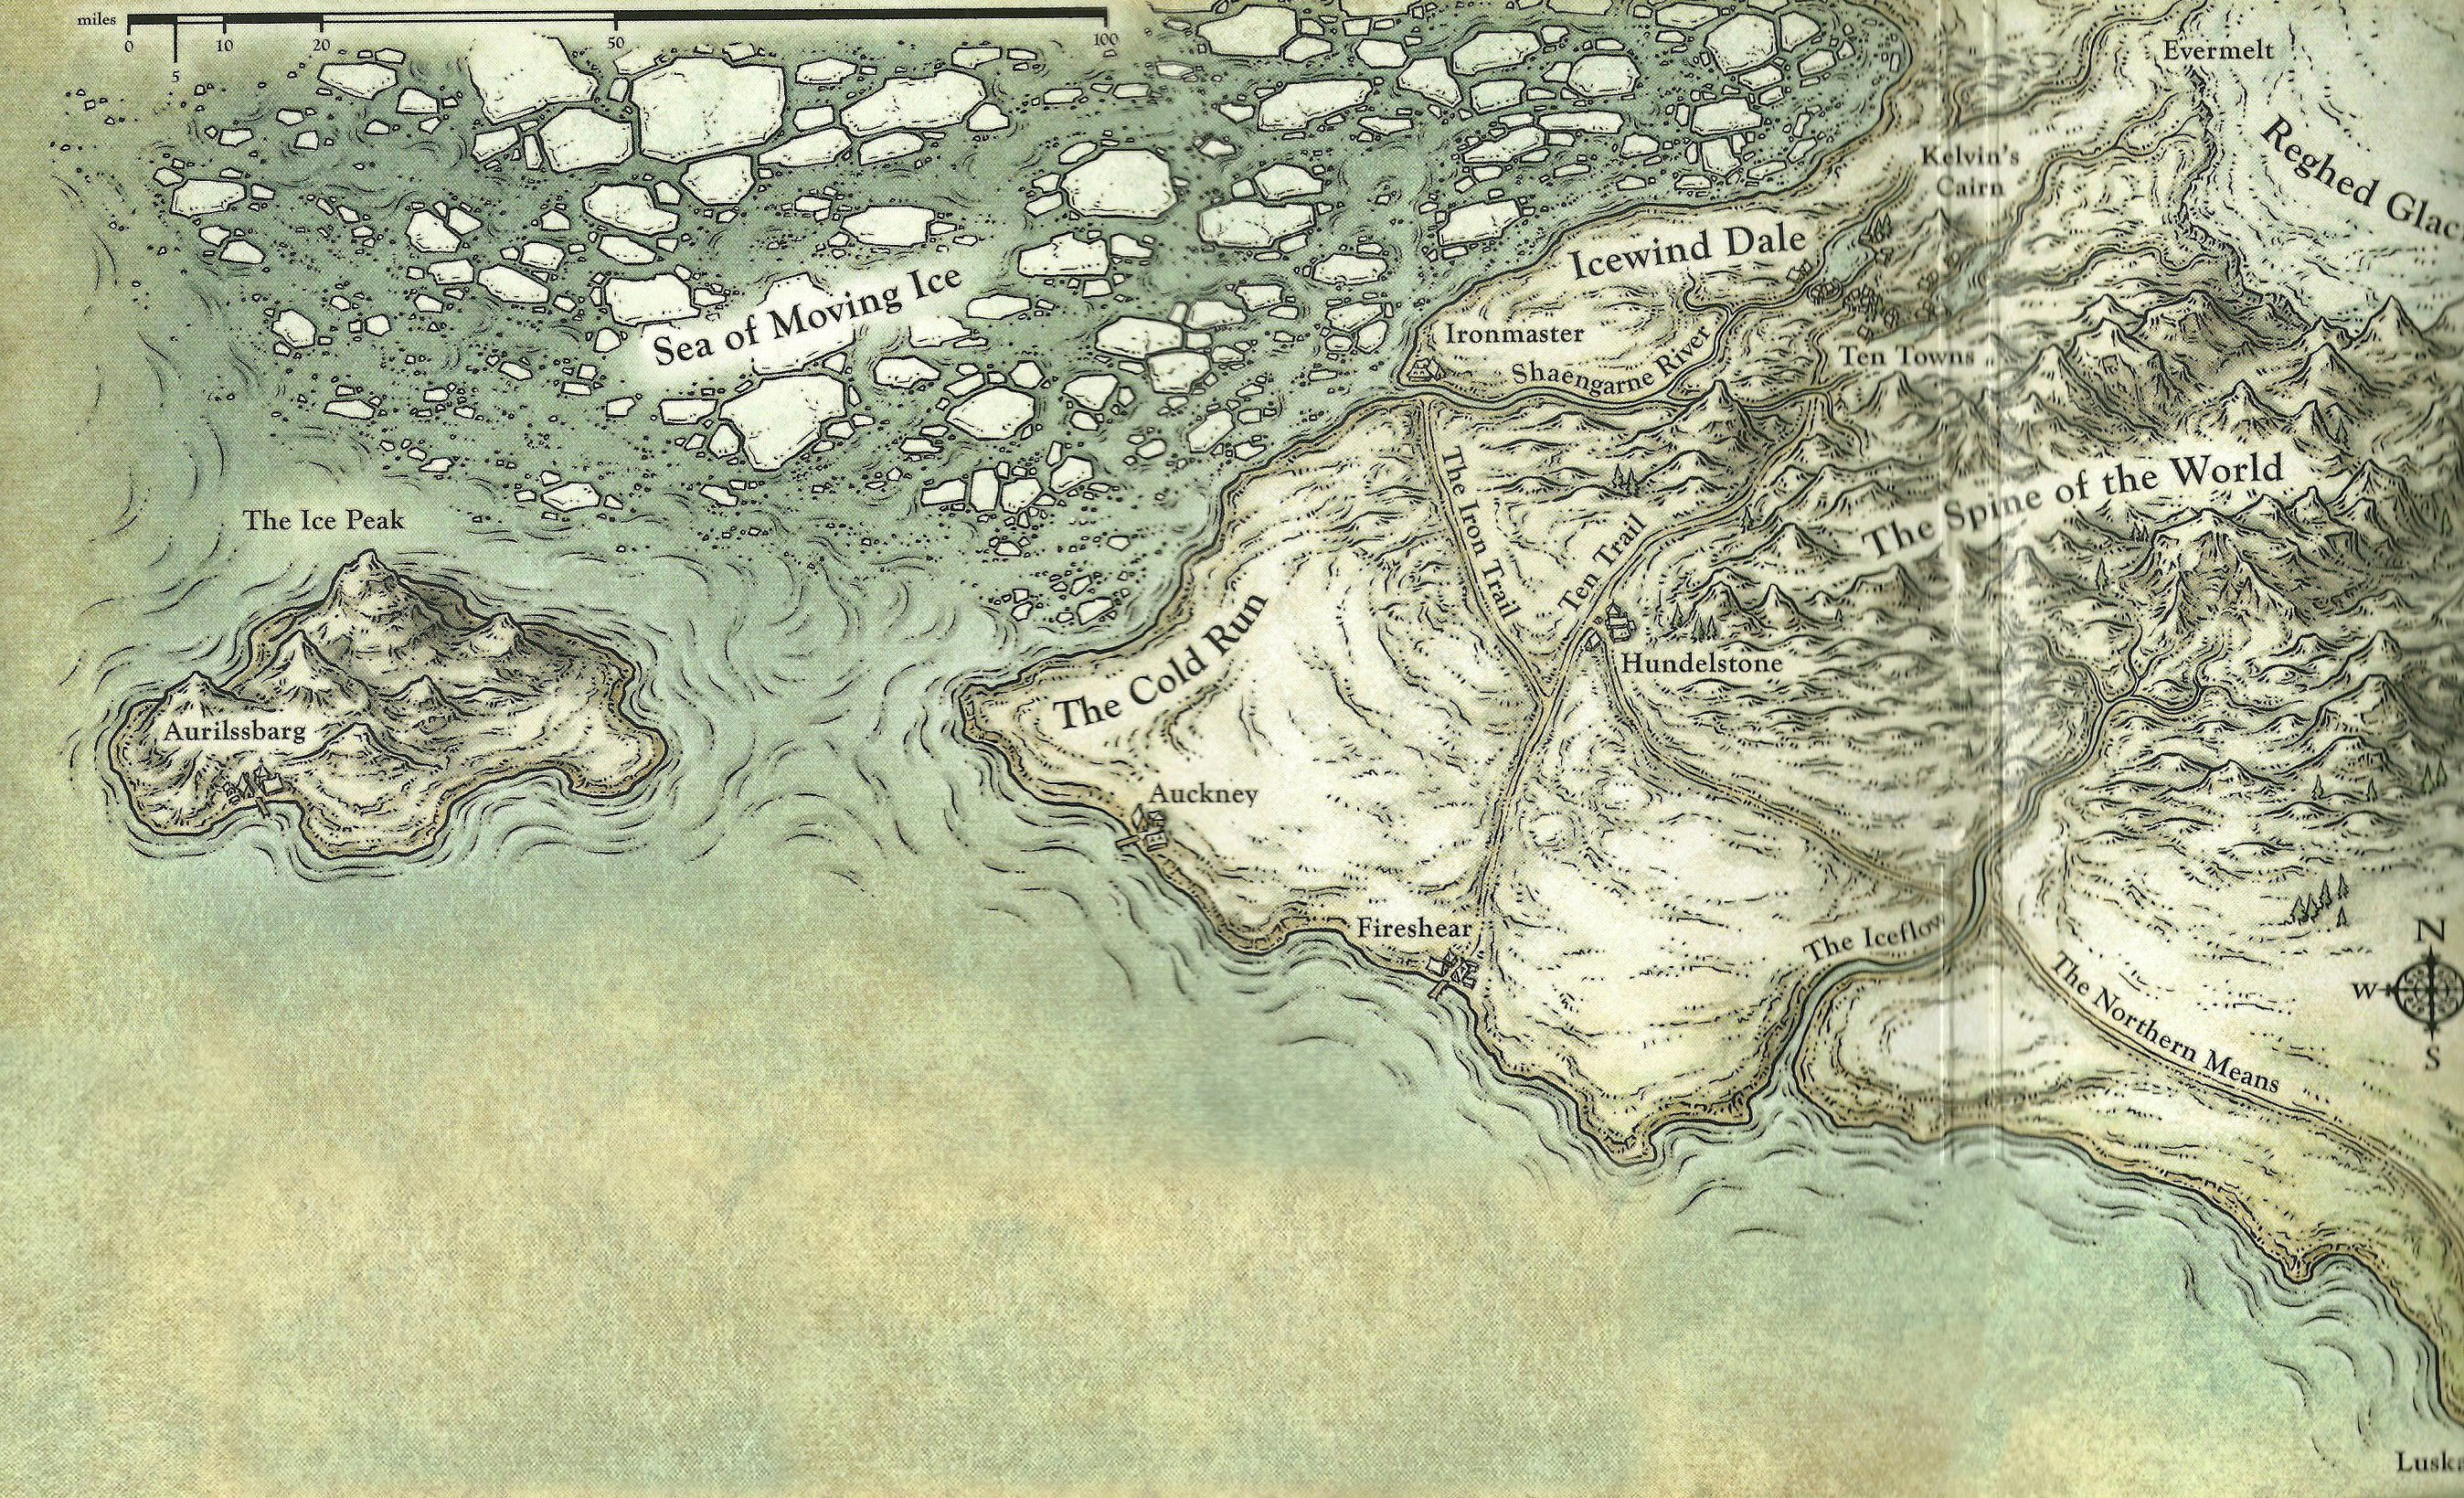 Icewind Dale Map From Pinterest 9